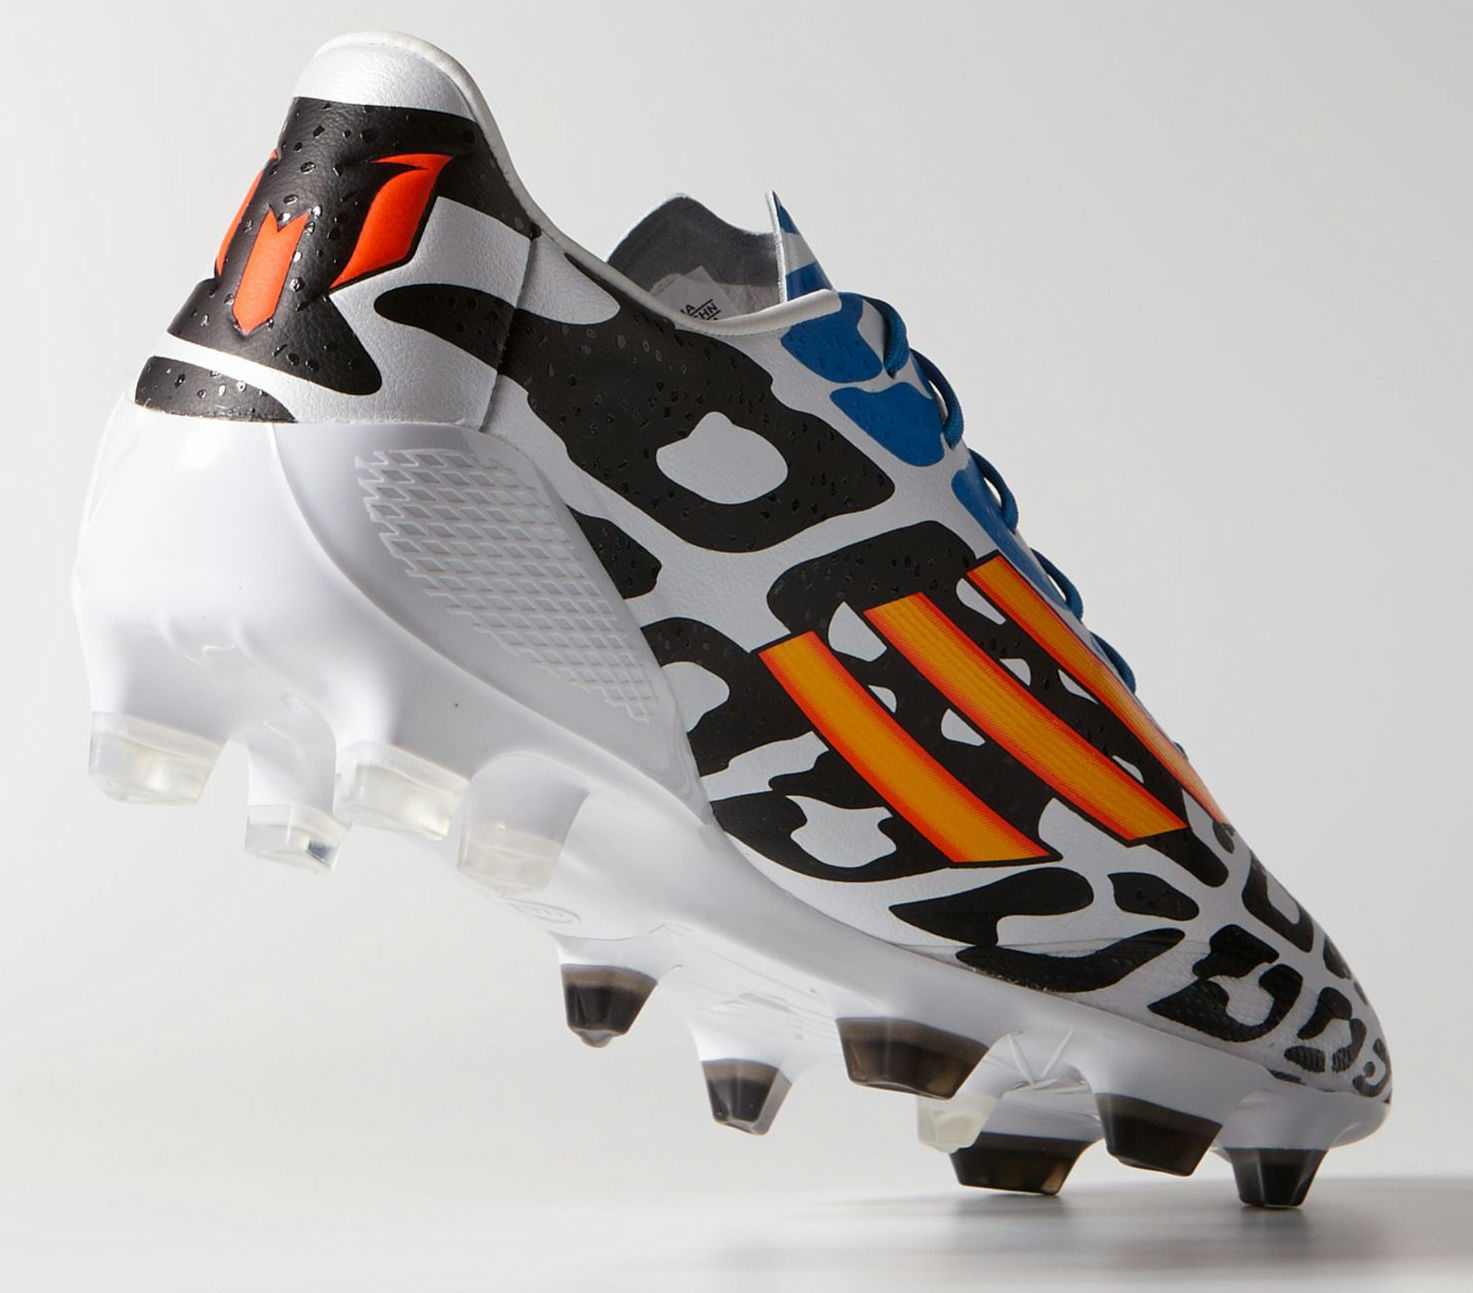 Adidas Adizero Messi 2014 World Cup Battle Pack Boot ...